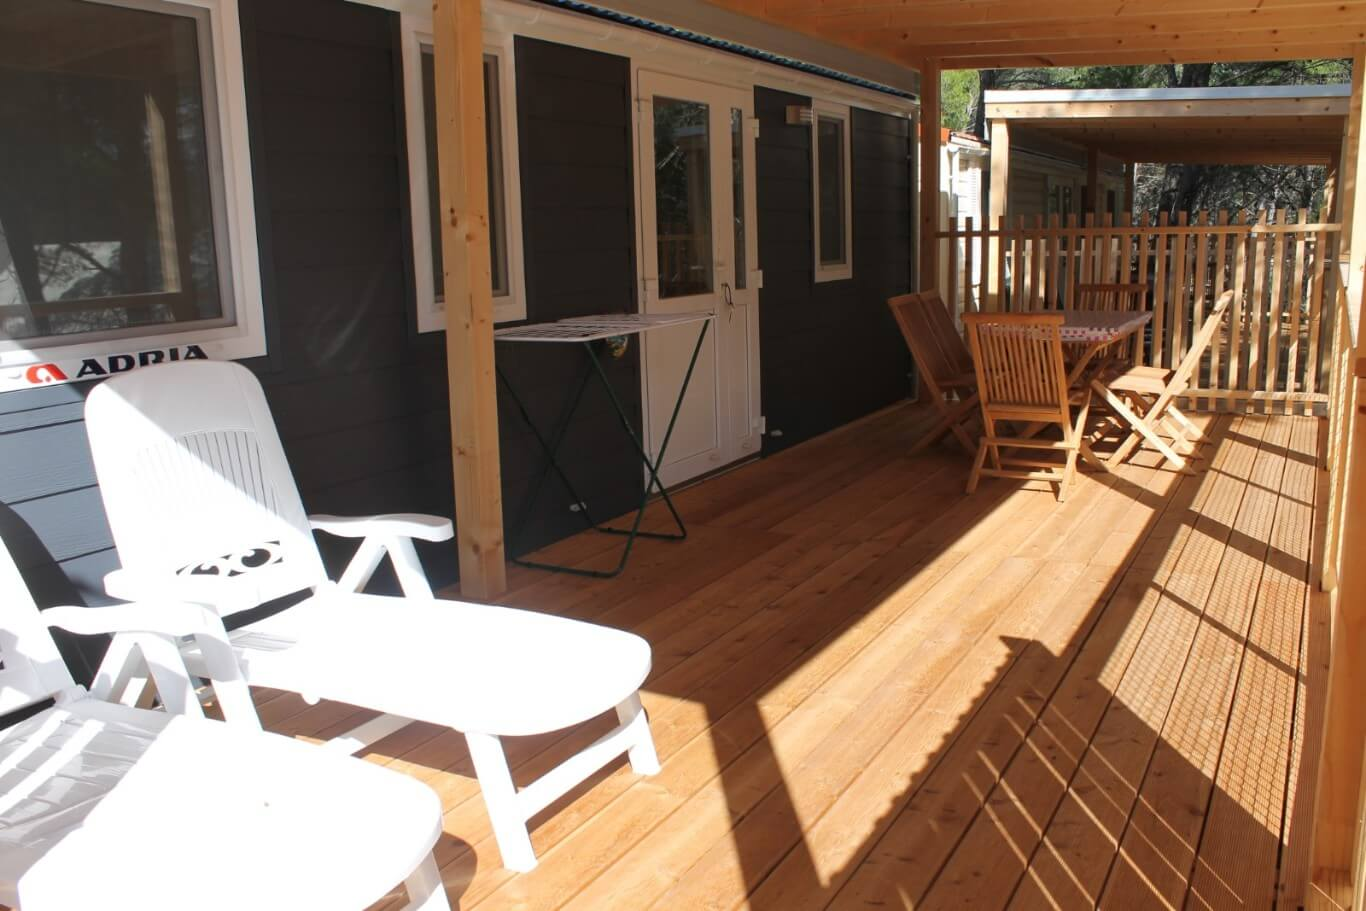 Camp Pasman on kelly mobile home, swiss mobile home, apollo mobile home, tuscany mobile home, ford mobile home, bentley mobile home, piedmont mobile home, ace mobile home, pioneer mobile home, aurora mobile home,